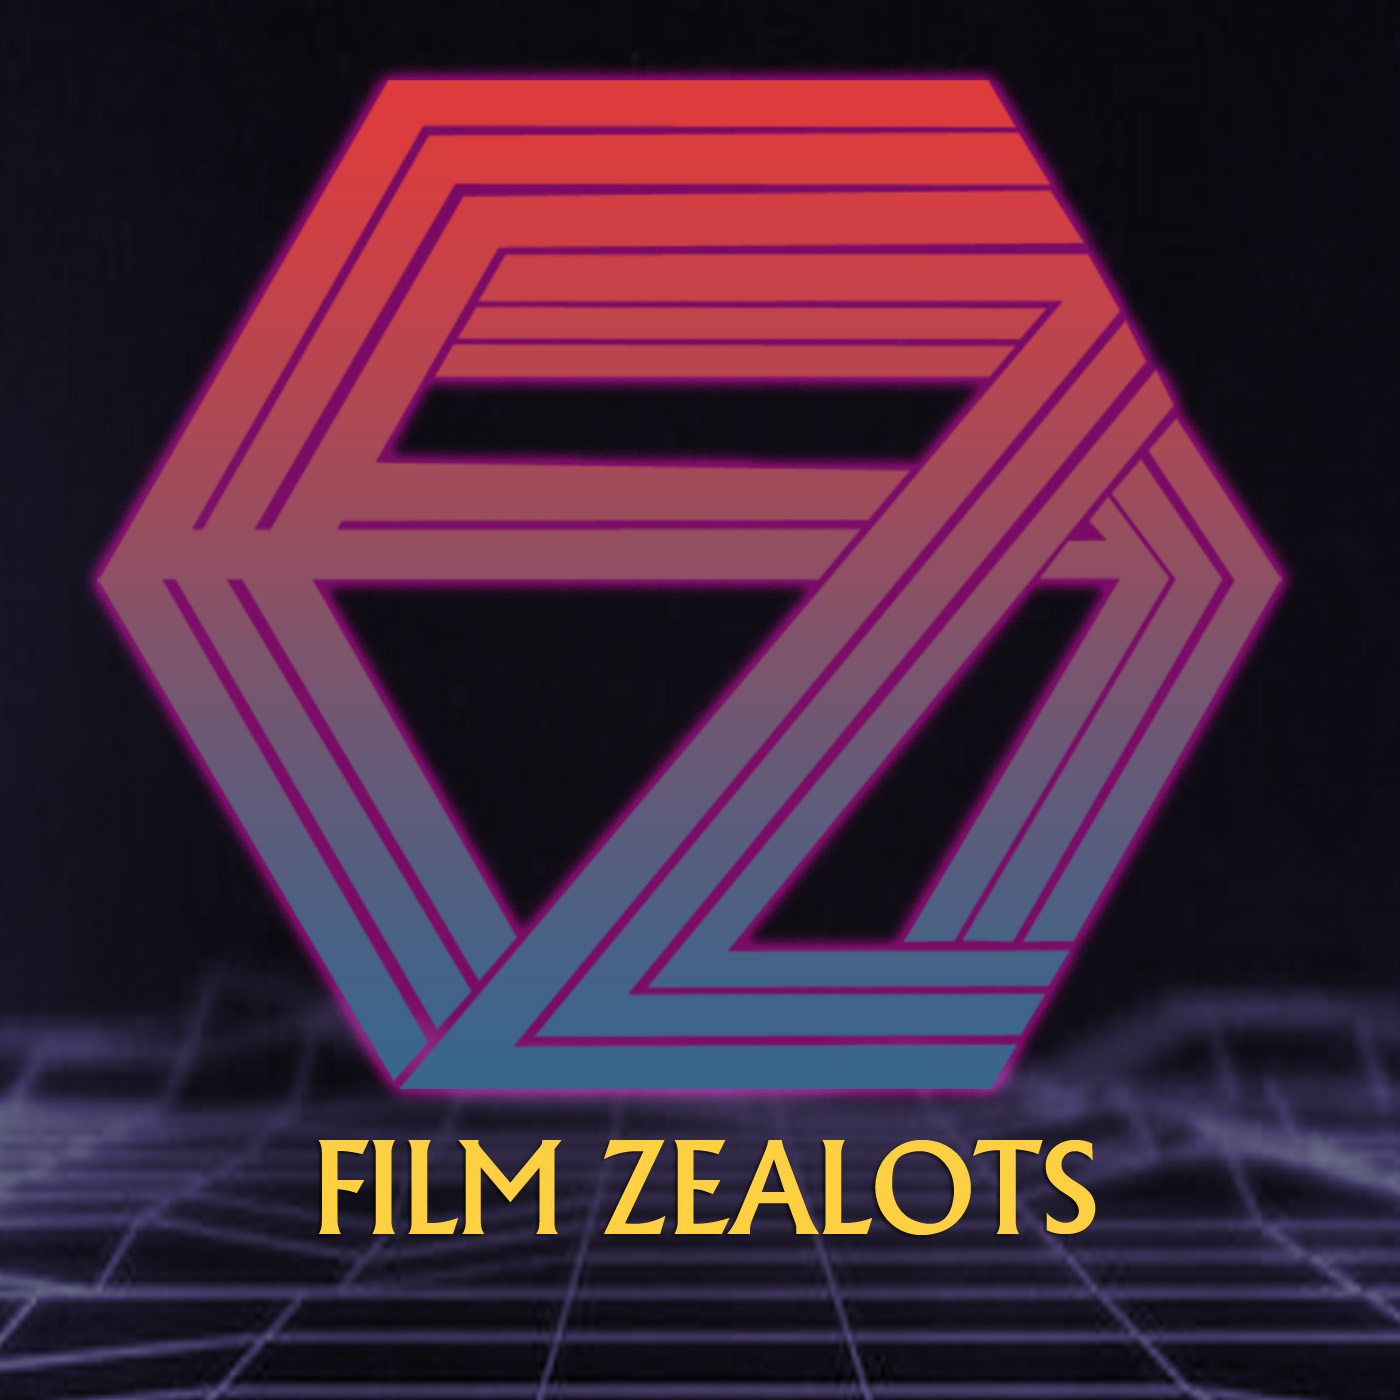 THE FILM ZEALOTS